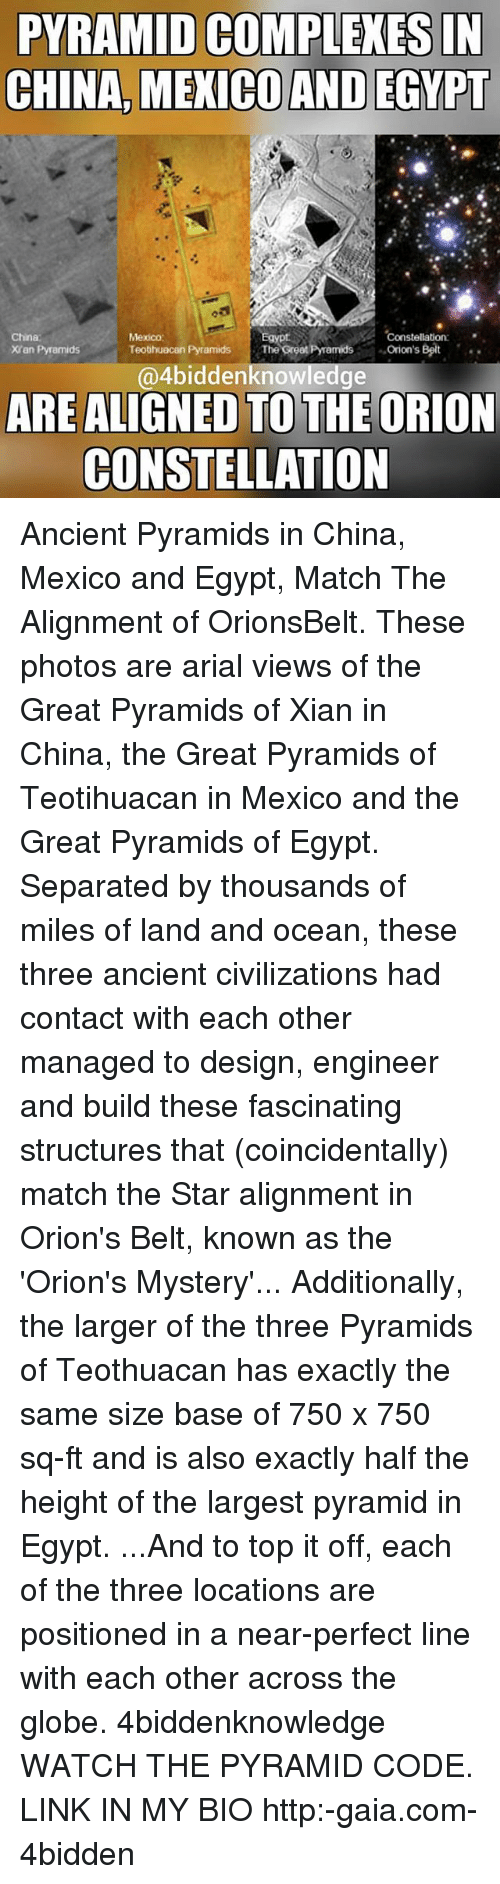 Egypte: PYRAMID COMPLEXES IN  CHINA MEXICOAND EGYPT  China  Mexico  Constellation  Orion's Belt  Teotihuacan Pyramids  The Great Pramids  Xian Pyramids  4biddenknowledge  ARE ALIGNED TO THE ORION  CONSTELLATION Ancient Pyramids in China, Mexico and Egypt, Match The Alignment of OrionsBelt. These photos are arial views of the Great Pyramids of Xian in China, the Great Pyramids of Teotihuacan in Mexico and the Great Pyramids of Egypt. Separated by thousands of miles of land and ocean, these three ancient civilizations had contact with each other managed to design, engineer and build these fascinating structures that (coincidentally) match the Star alignment in Orion's Belt, known as the 'Orion's Mystery'... Additionally, the larger of the three Pyramids of Teothuacan has exactly the same size base of 750 x 750 sq-ft and is also exactly half the height of the largest pyramid in Egypt. ...And to top it off, each of the three locations are positioned in a near-perfect line with each other across the globe. 4biddenknowledge WATCH THE PYRAMID CODE. LINK IN MY BIO http:-gaia.com-4bidden